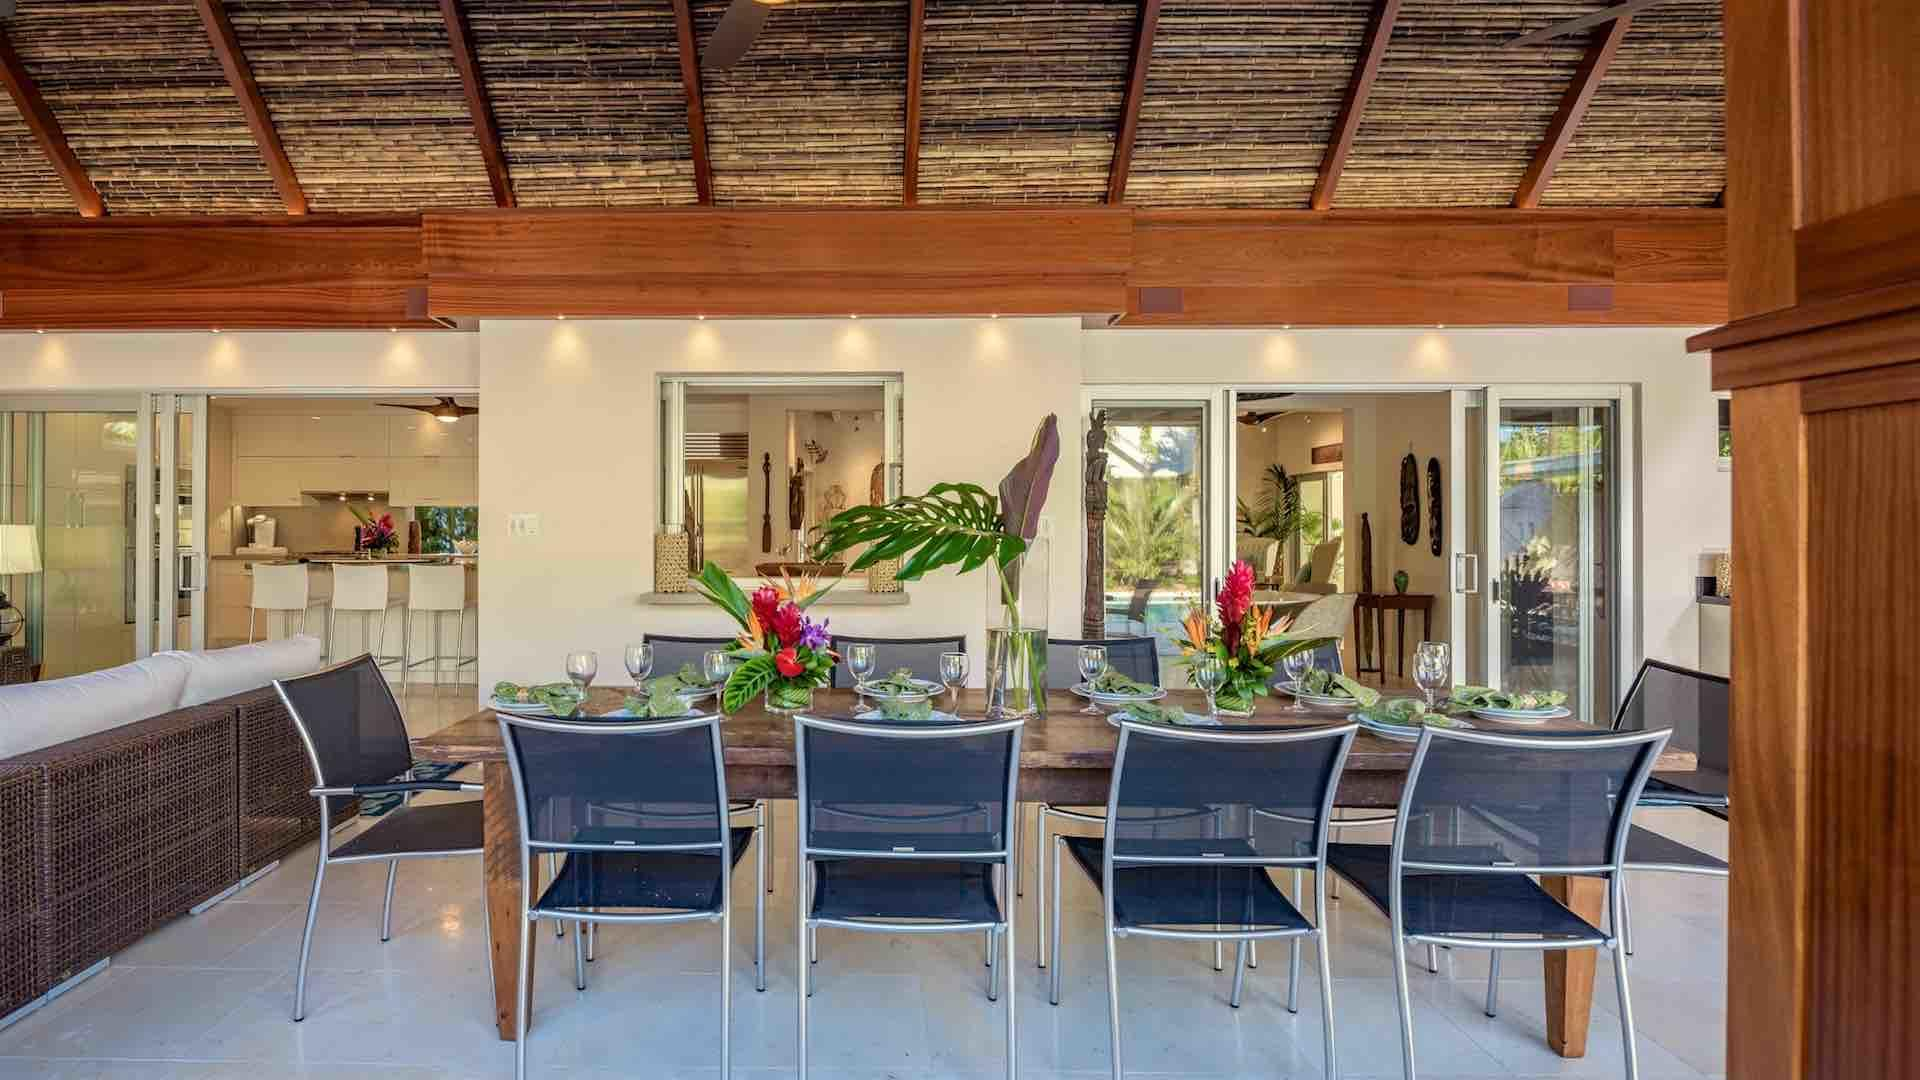 The large outdoor dining table seats 10 comfortably...